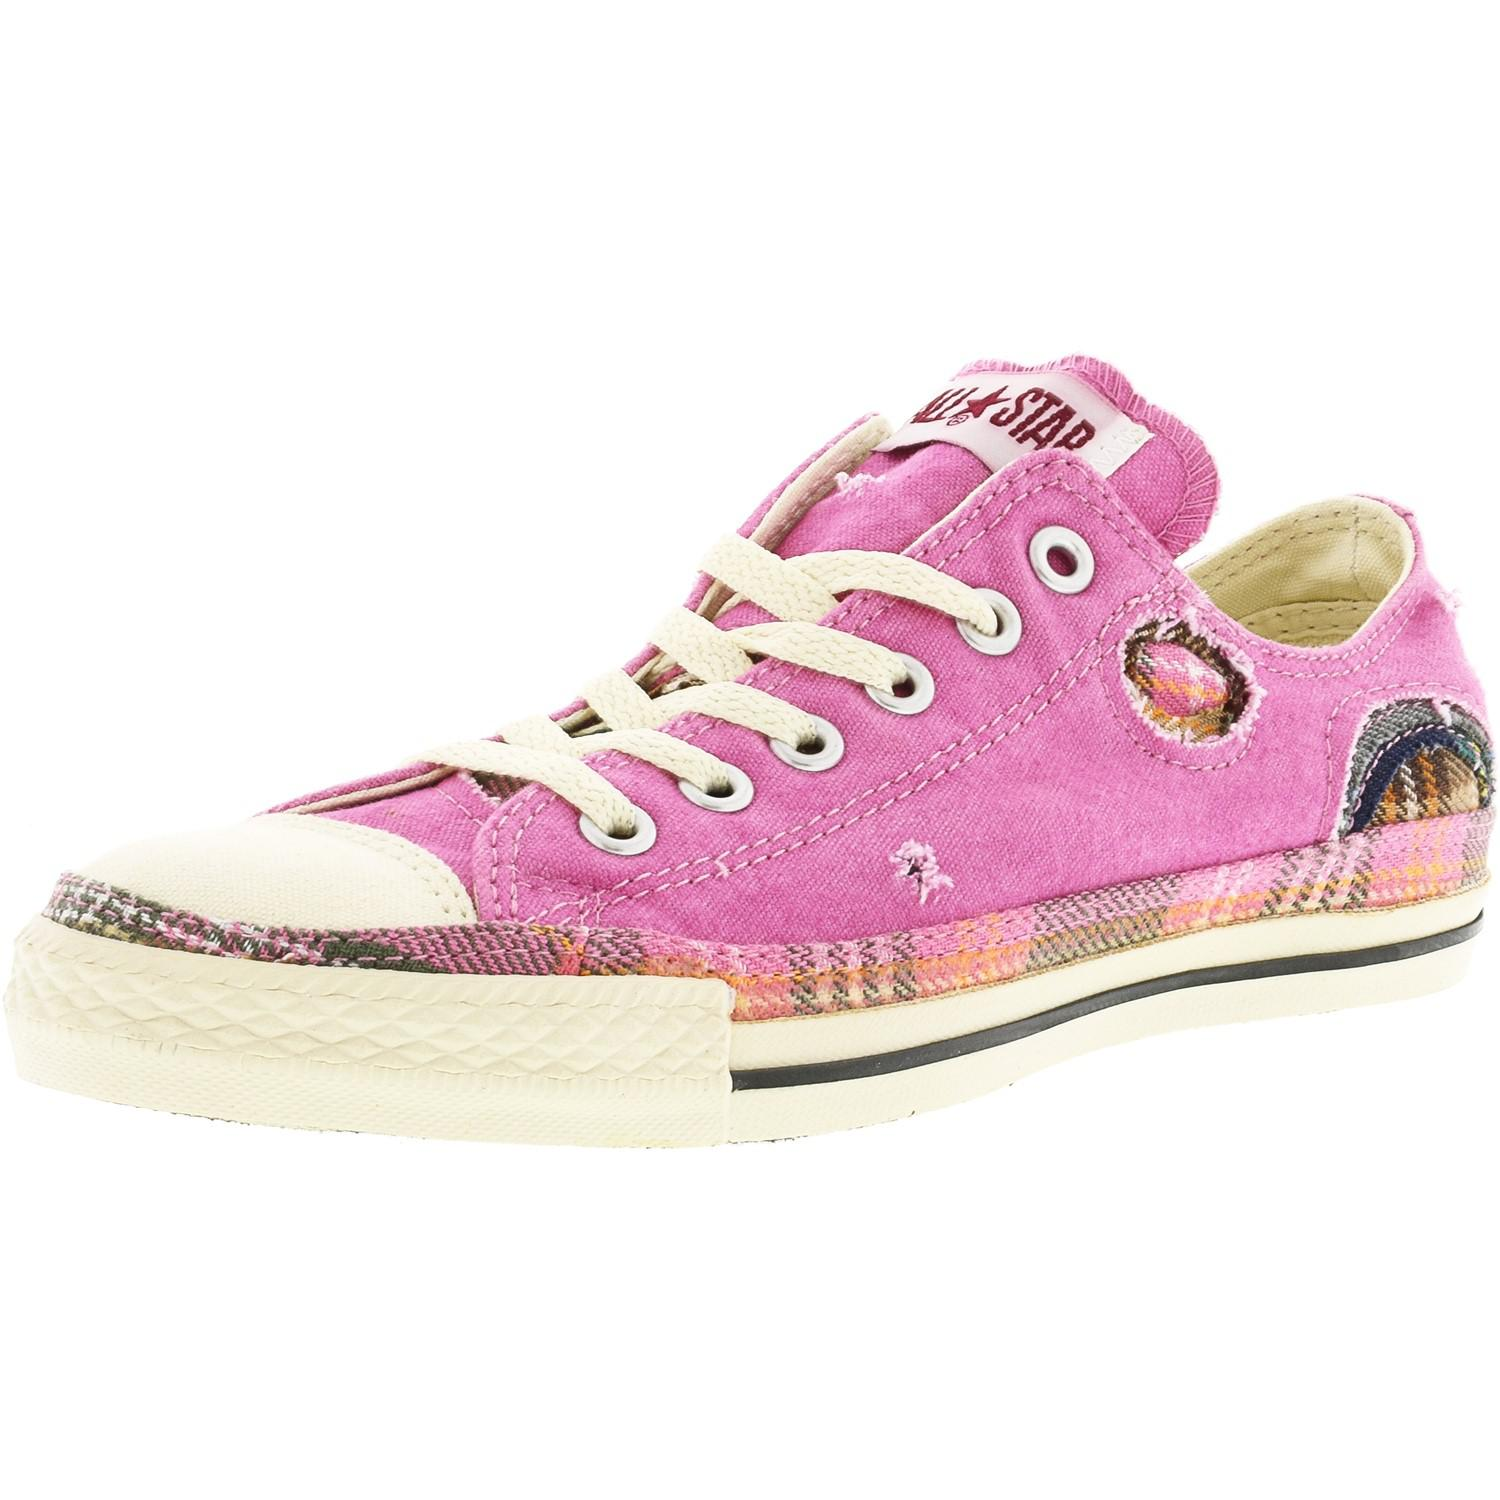 3529b3678a22 Lyst - Converse Chuck Taylor Patchwork Ox Pink   Parchment Ankle ...